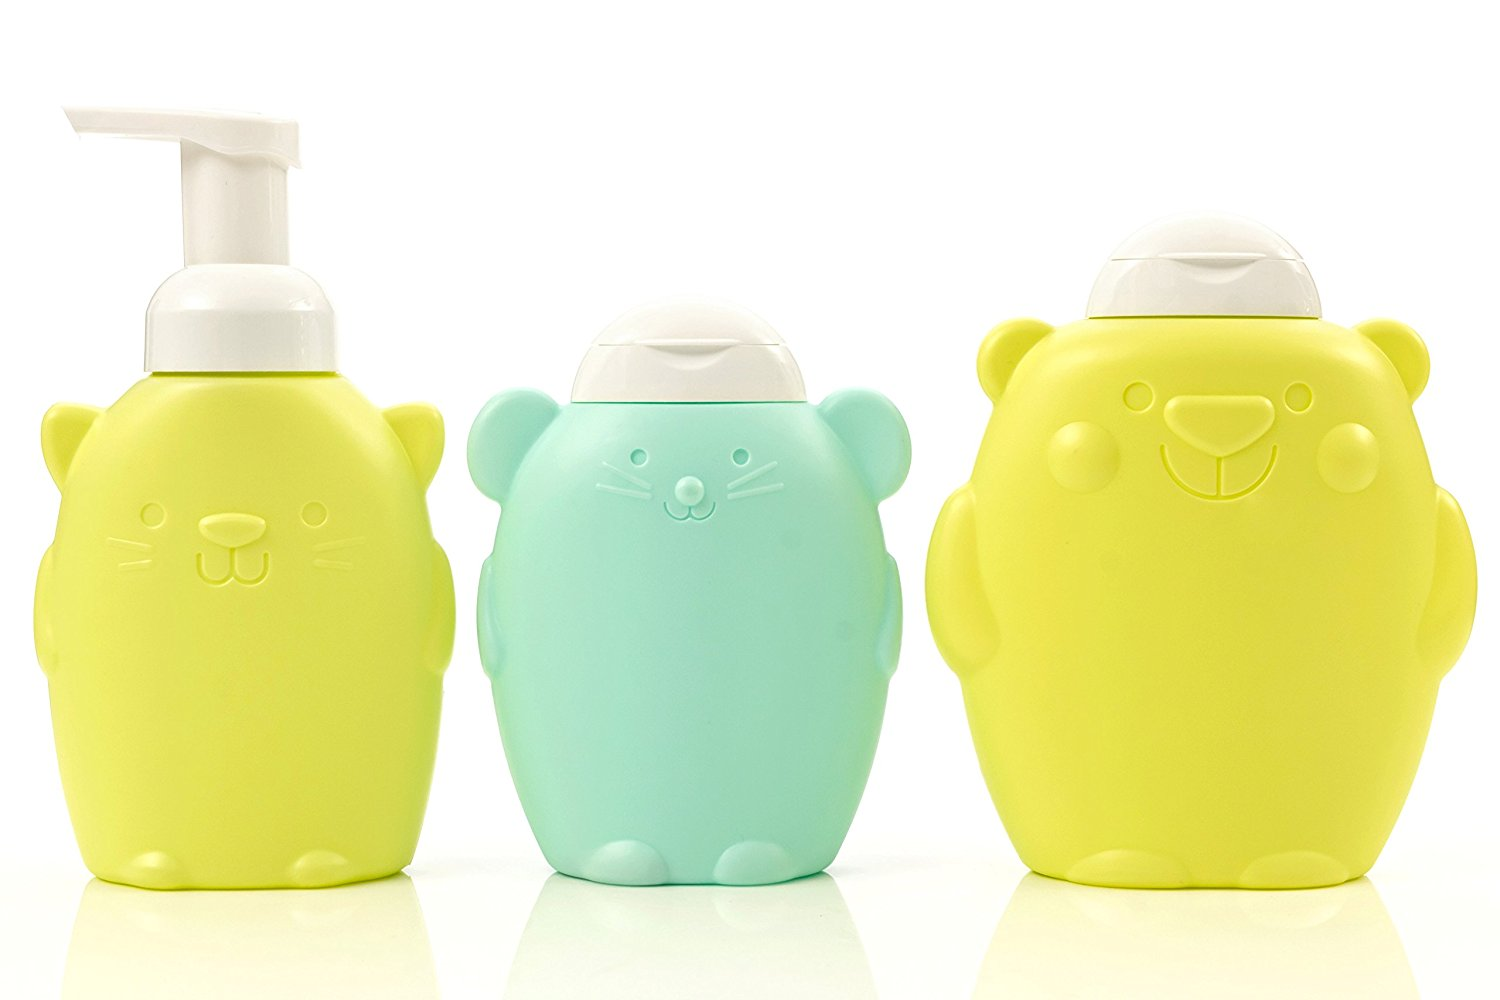 Newday Bottles, A Set of Kitty Cat Soap Dispenser with Foamer Pump Refillable, Bear Shampoo Plastic Bottle Dispenser, Mouse Shower Gel Dispenser with White Lid, 3-Pack, Colorful and Kid Friendly